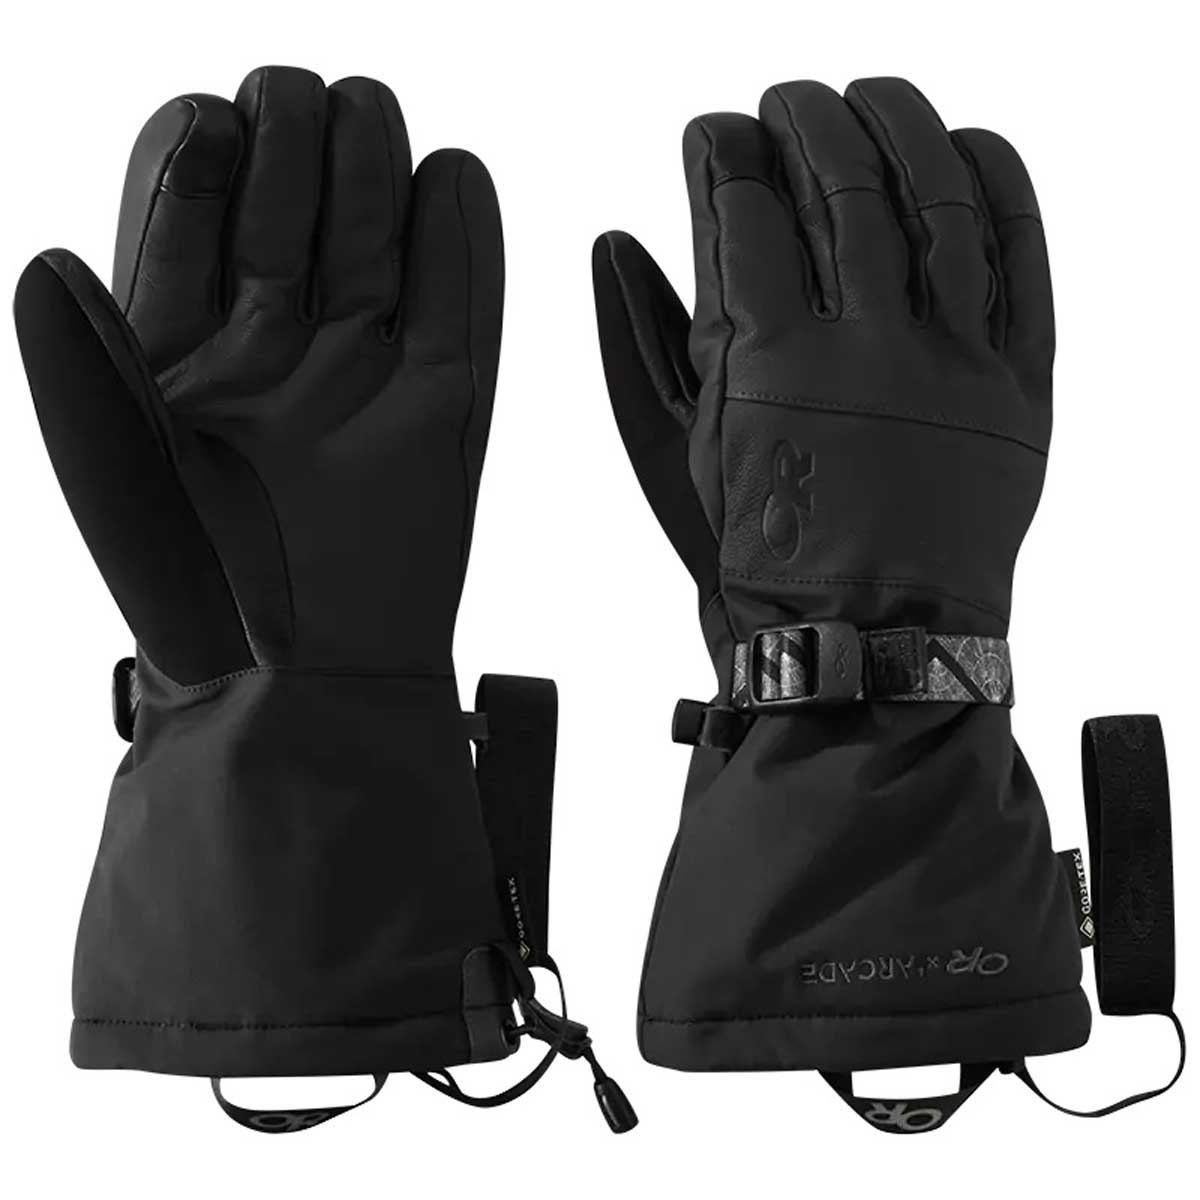 Outdoor Research Men's Carbide Sensor Gloves in Black and Storm